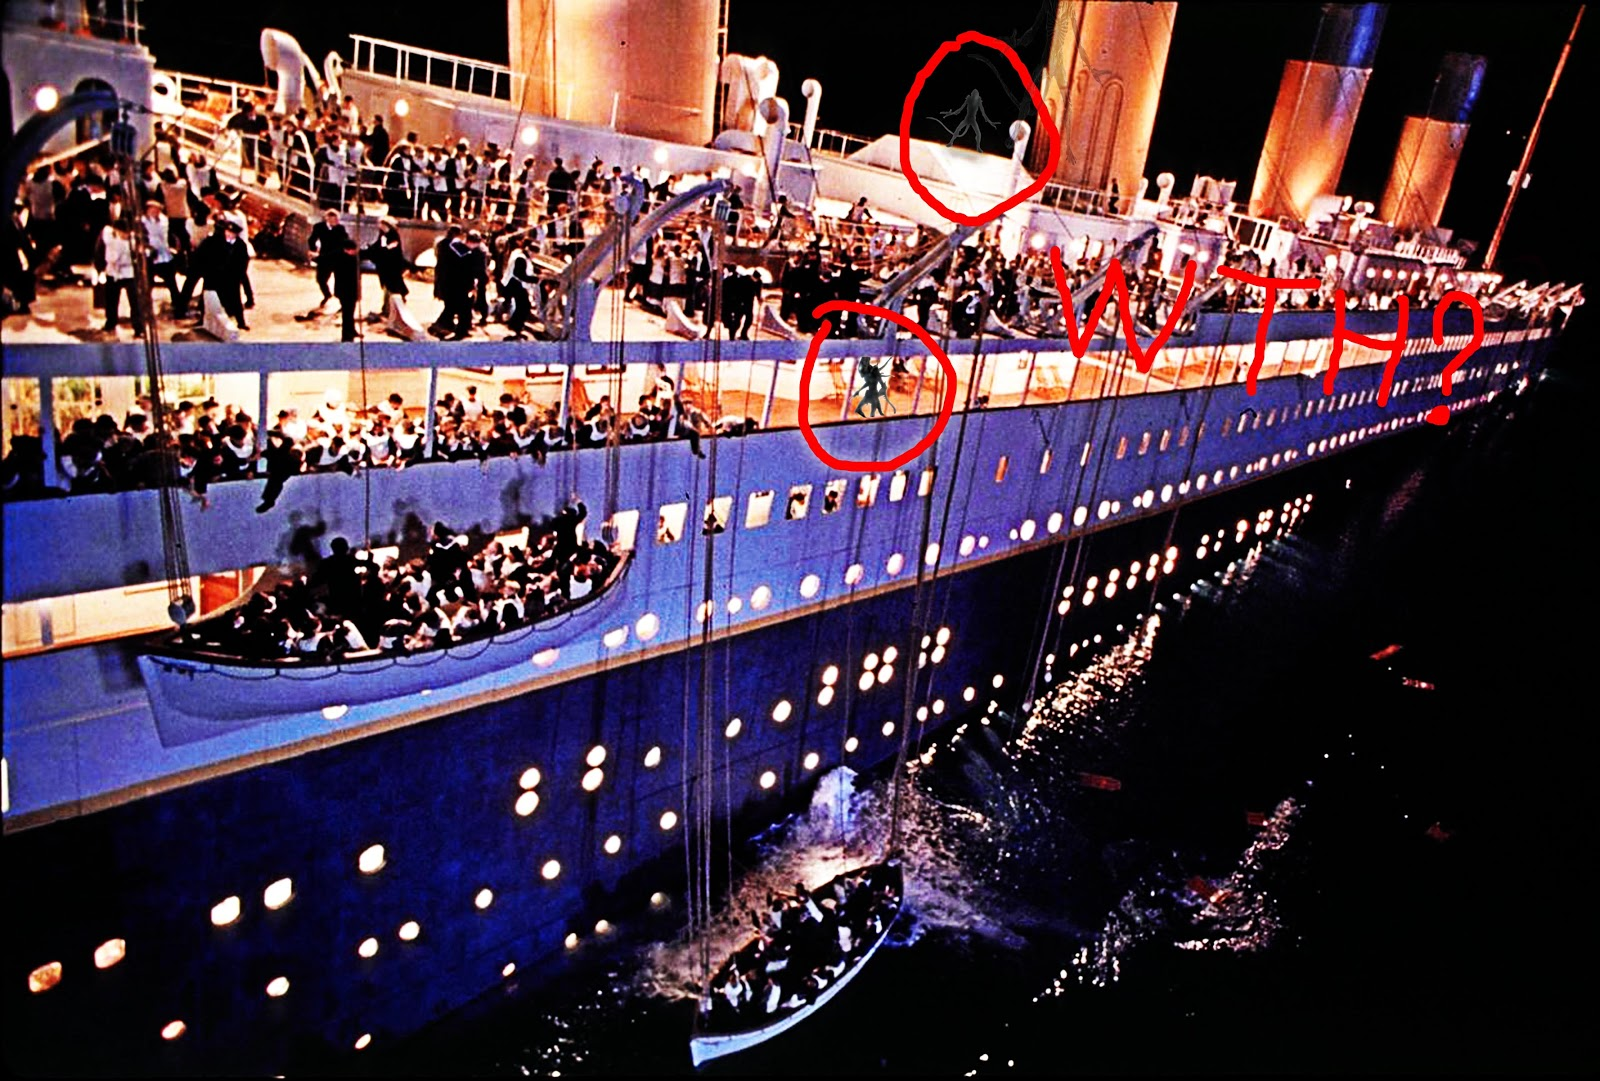 why did the titanic sank The titanic sank because it hit an iceberg, and the iceberg did so much damage to the ship, and in the wrong place that it was doomed to sink laredo 9 years ago 2.